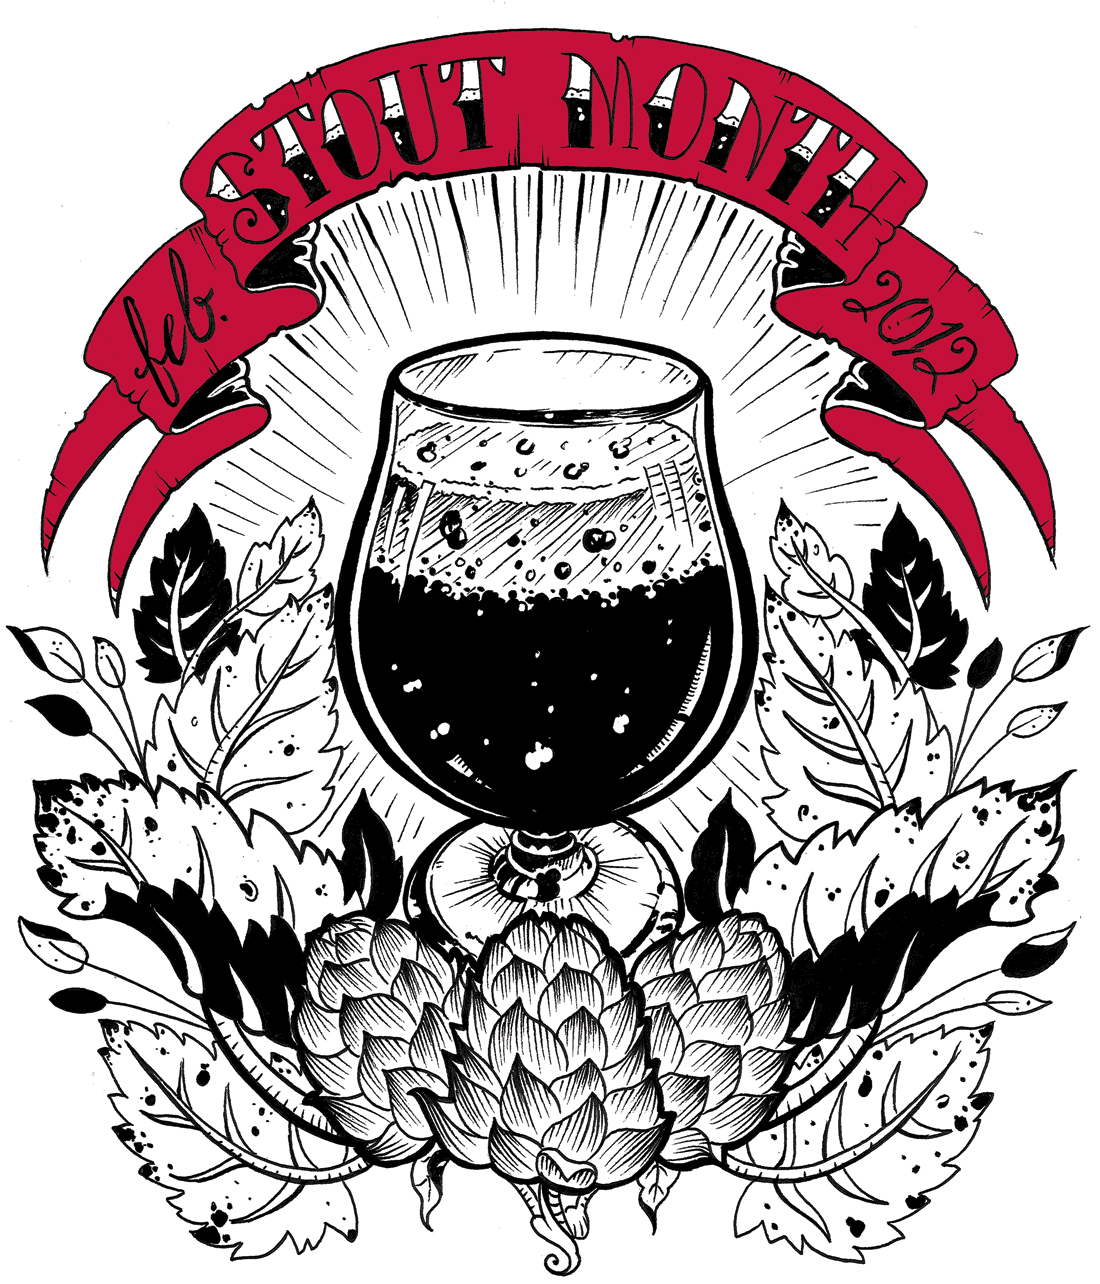 Fort George Brewery's Festival of Dark Arts.